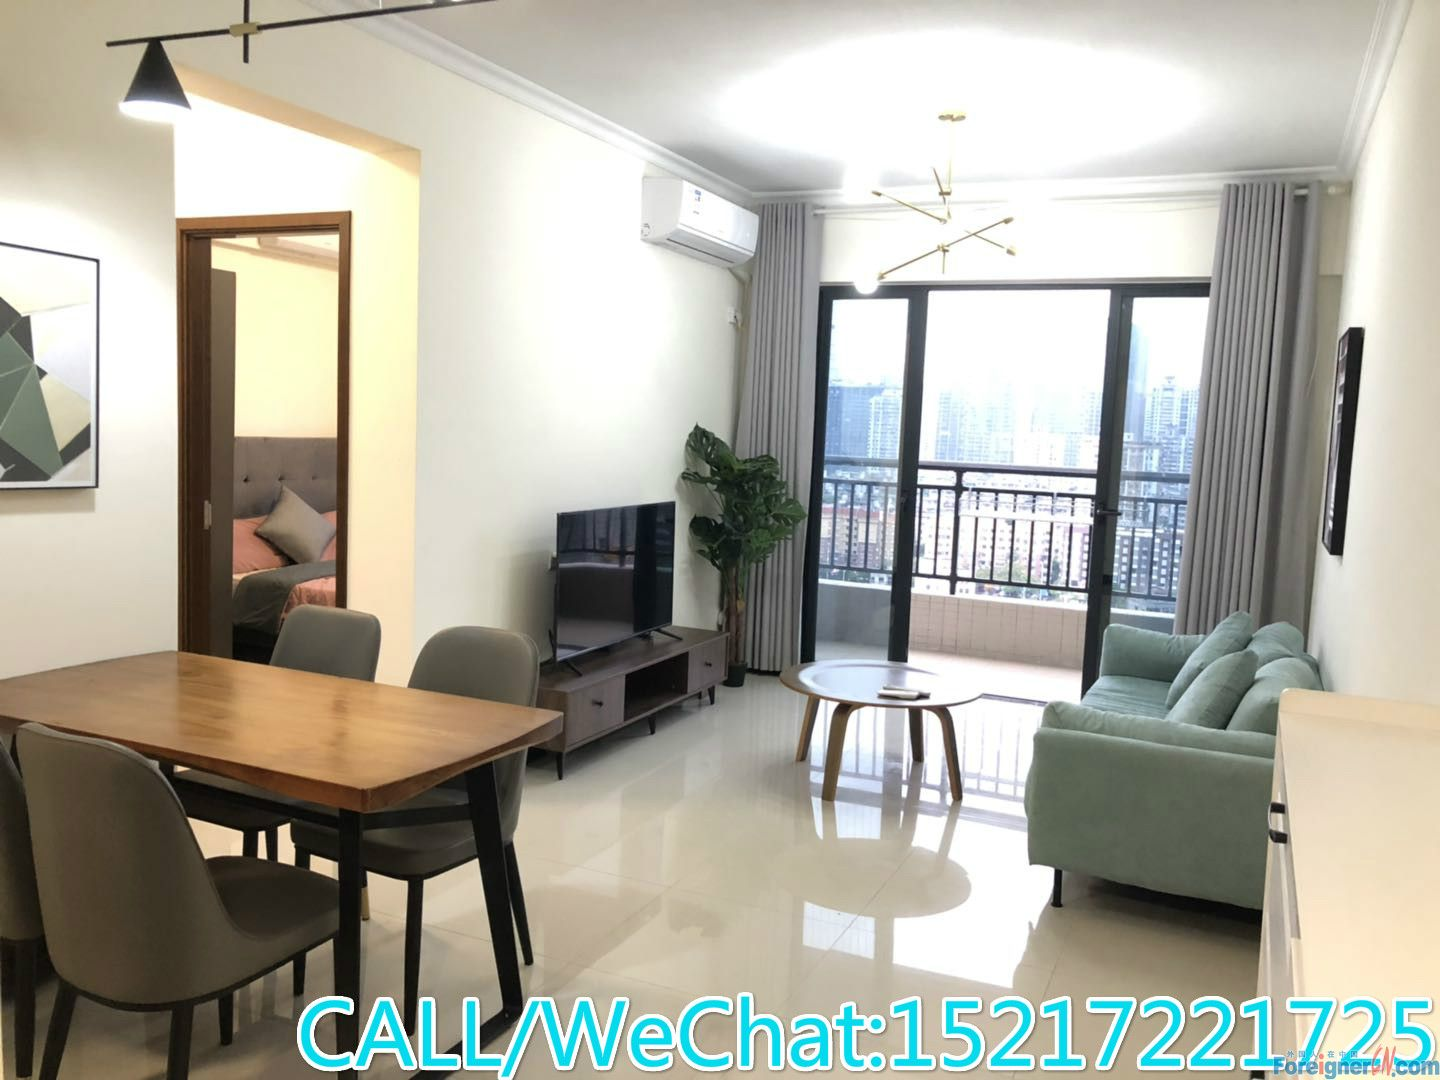 Good Price/Bright and Clean/Good Layout/High Floor/Nice View/CBD AREA